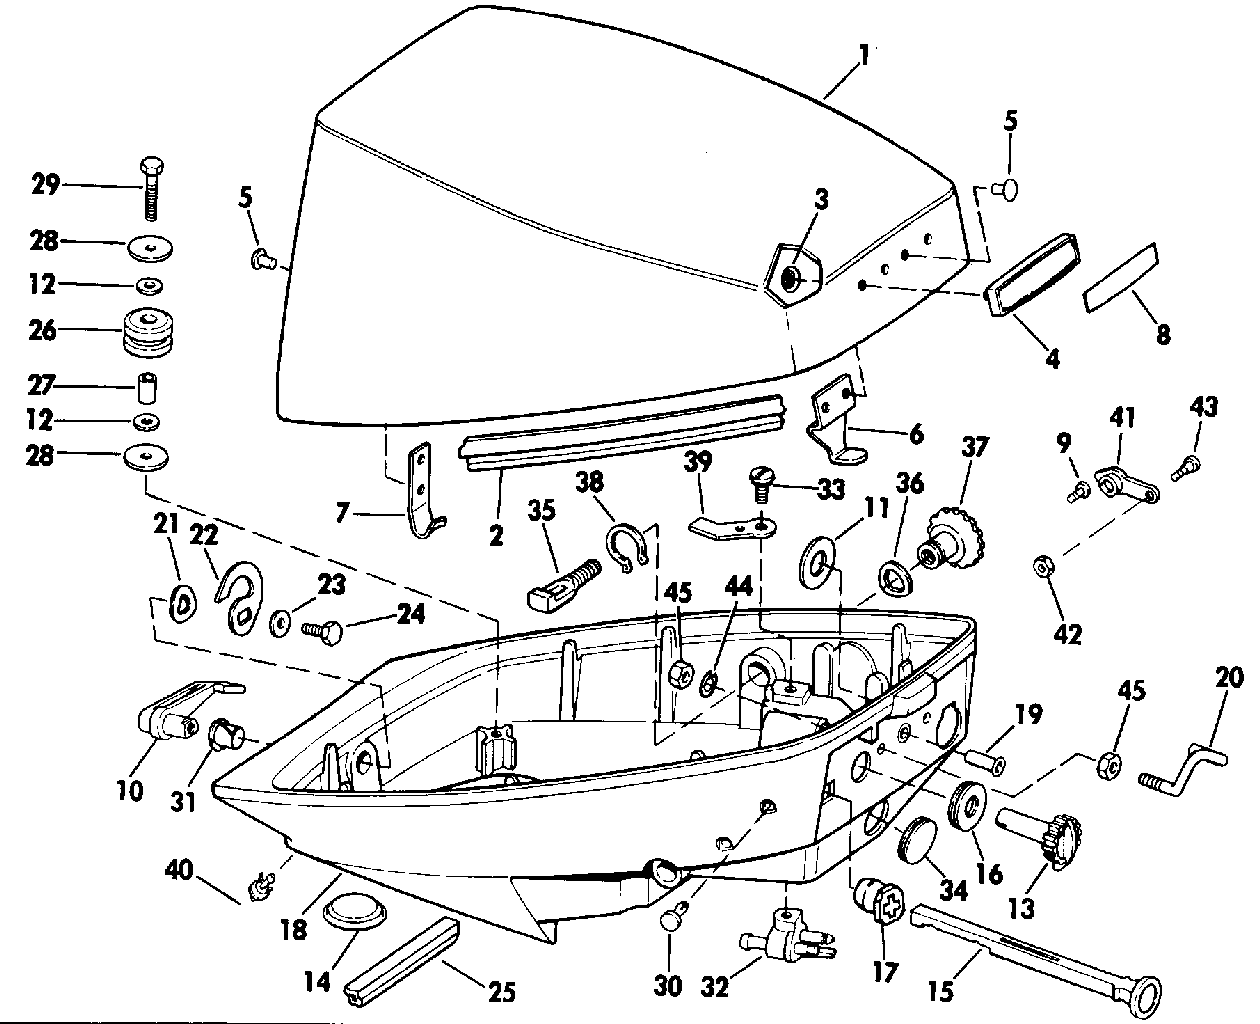 99 Evinrude Motor Lower Unit Diagram Trusted Wiring 9 Hp 84 Parts Circuit Connection U2022 On A 40 Propeller